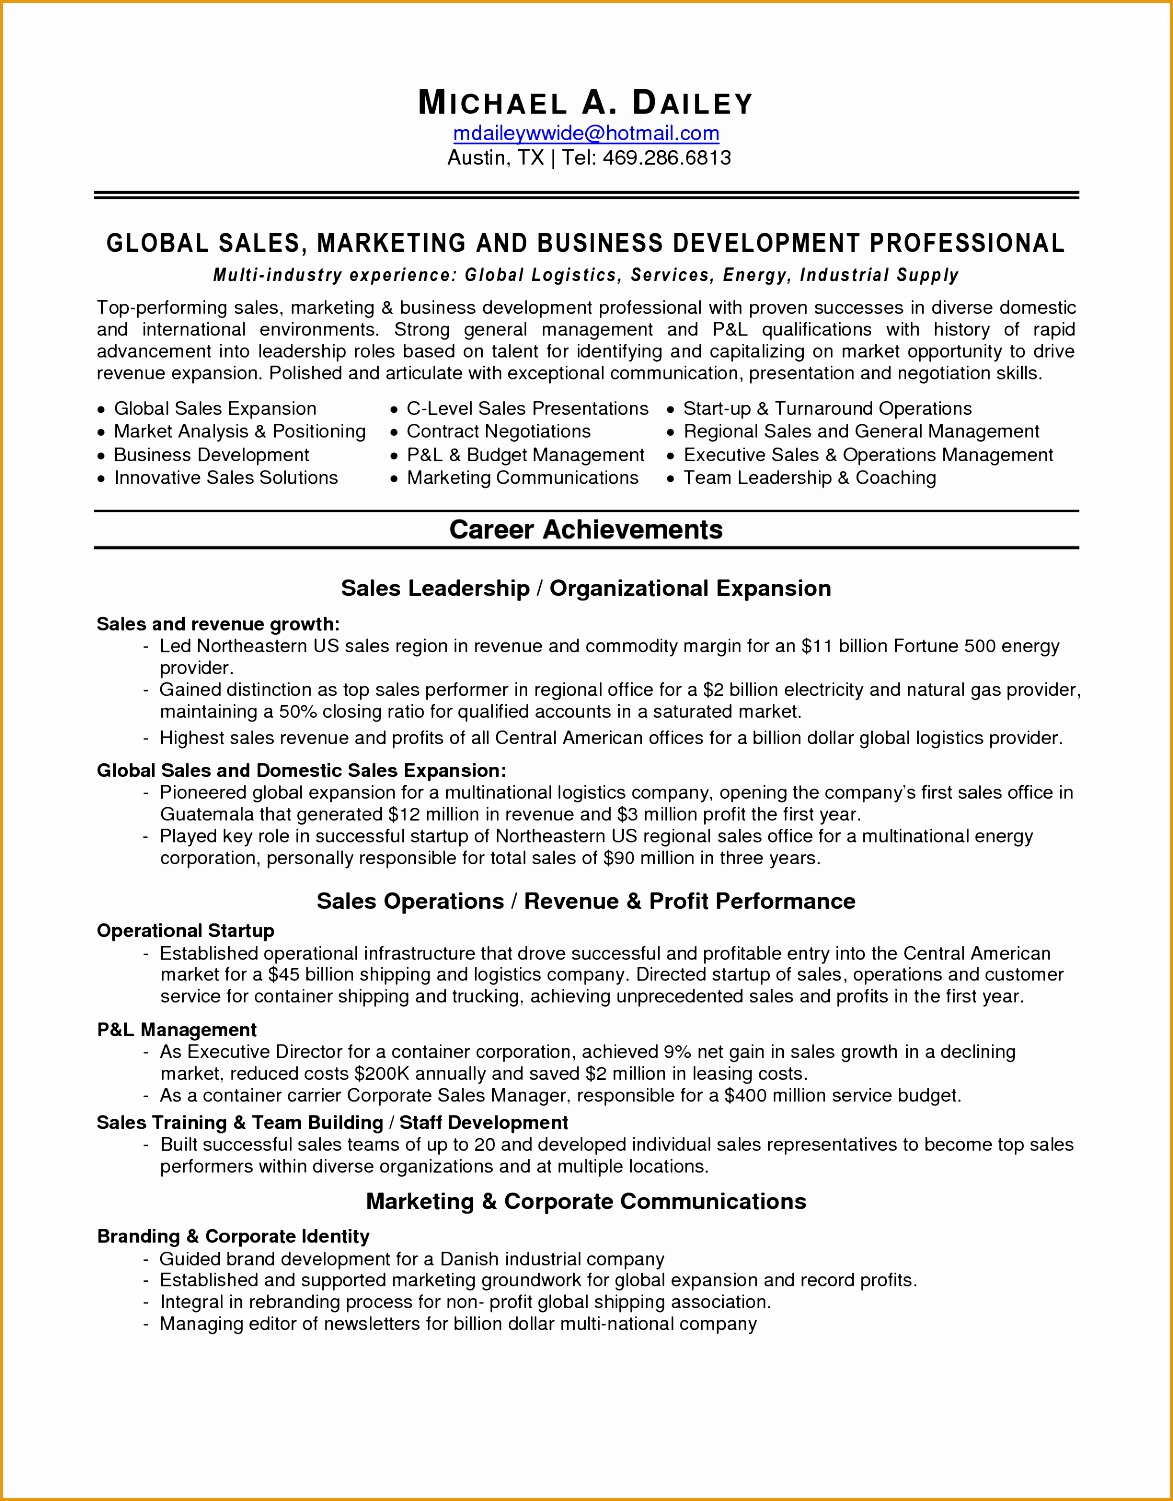 Sales Resume Examples 2017 6 Sales Marketing Resume Sample Free Samples Examples